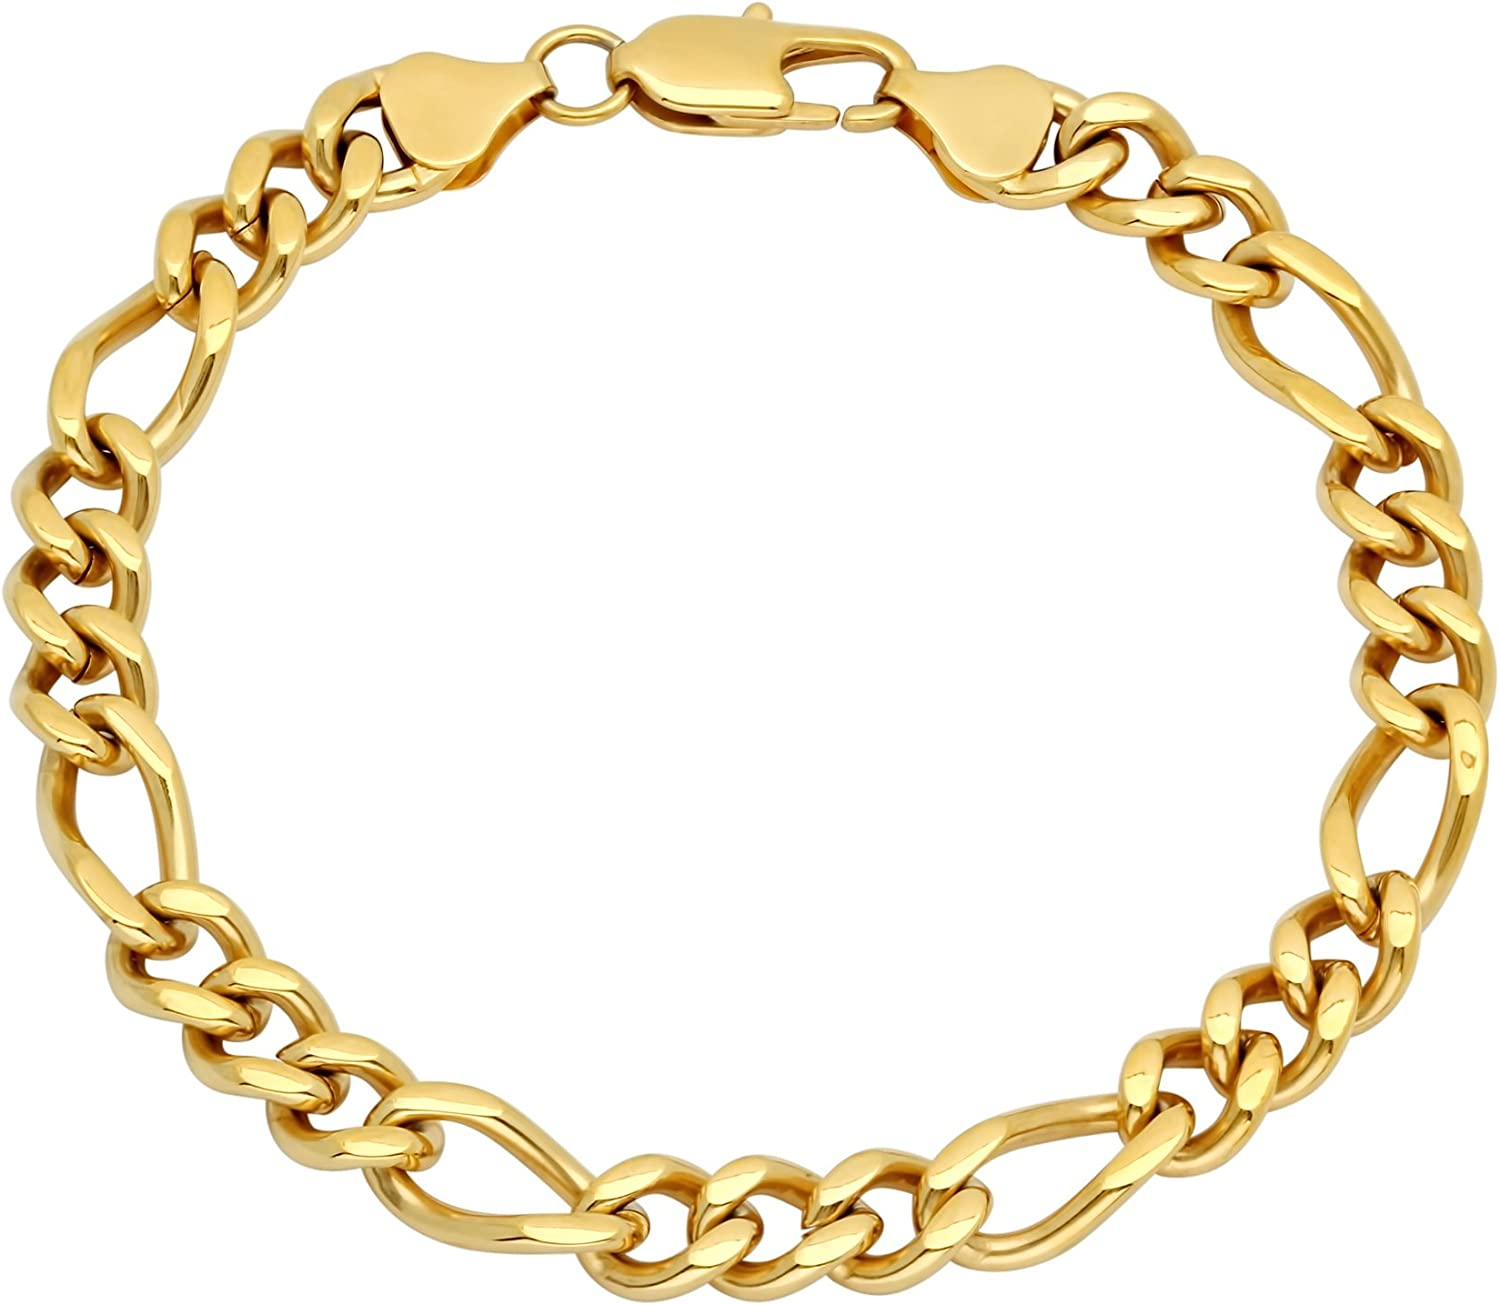 STEEL NATION JEWELRY Men's Gold-Tone Stainless Steel Figaro Bracelet, 9-inches